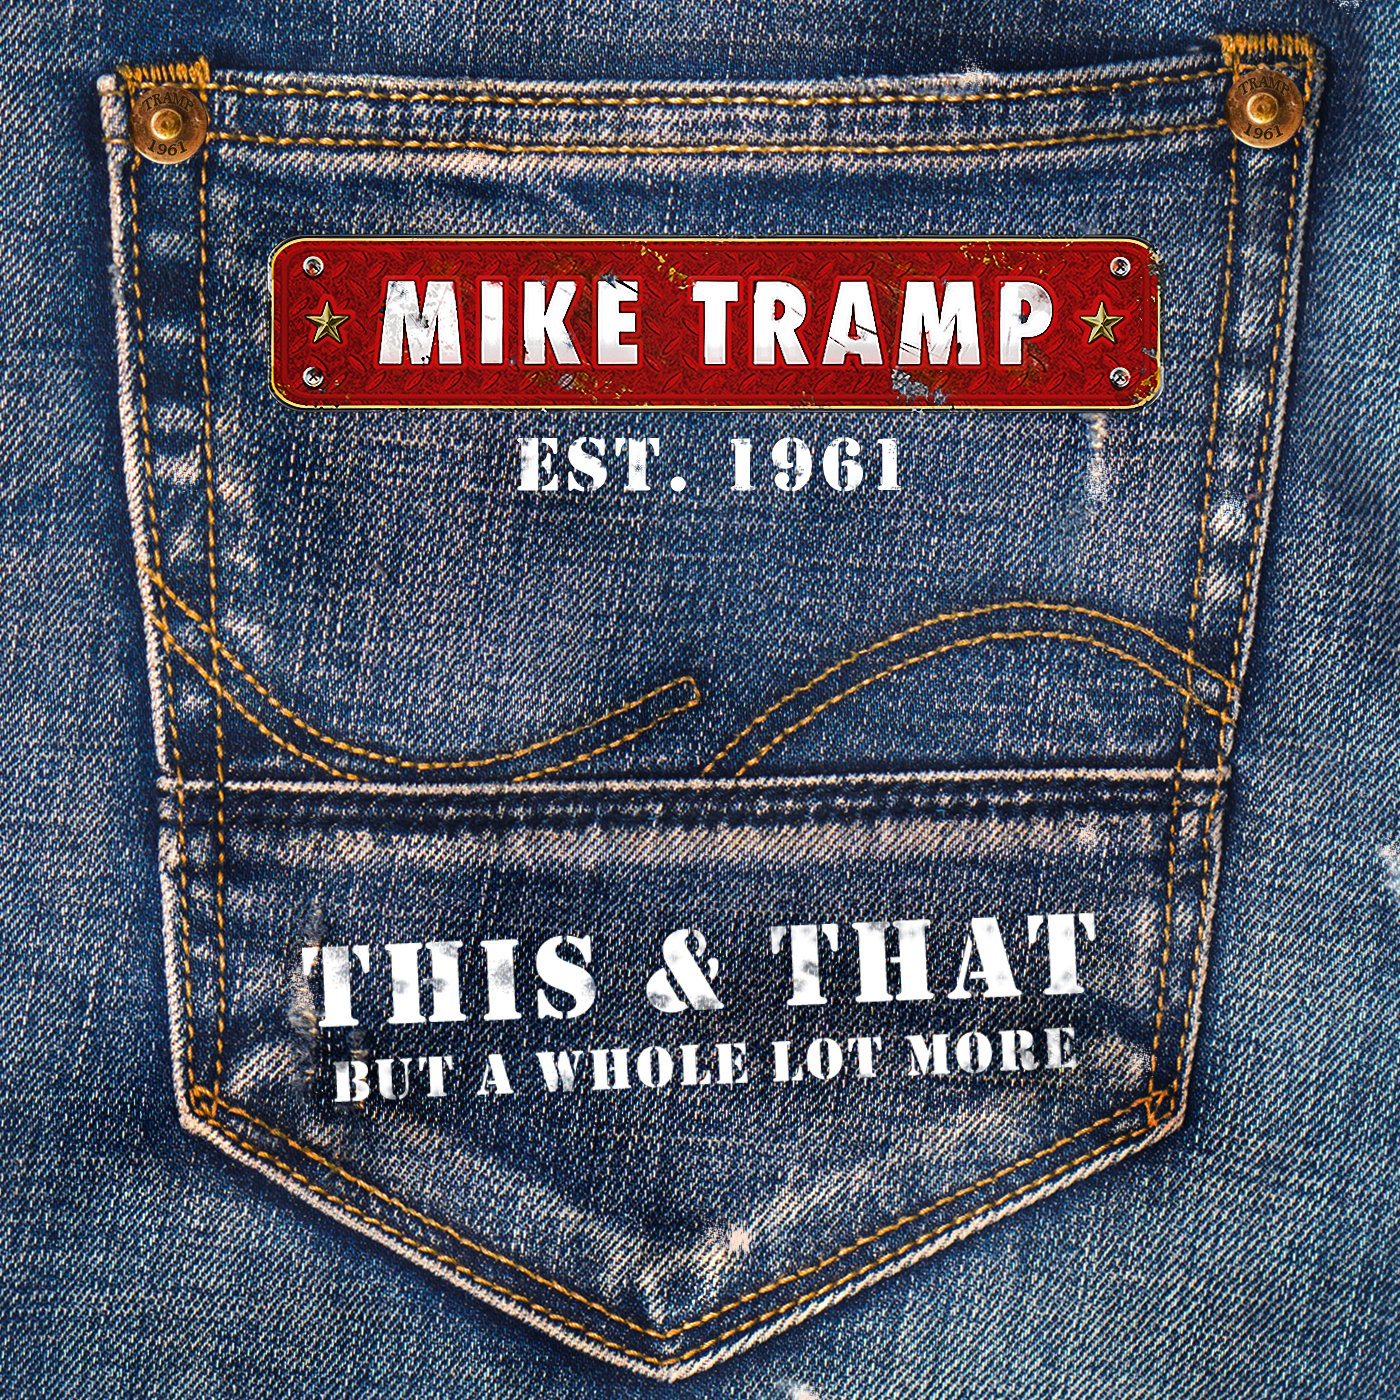 30 Years Of Goodies In New Box Set From Mike Tramp